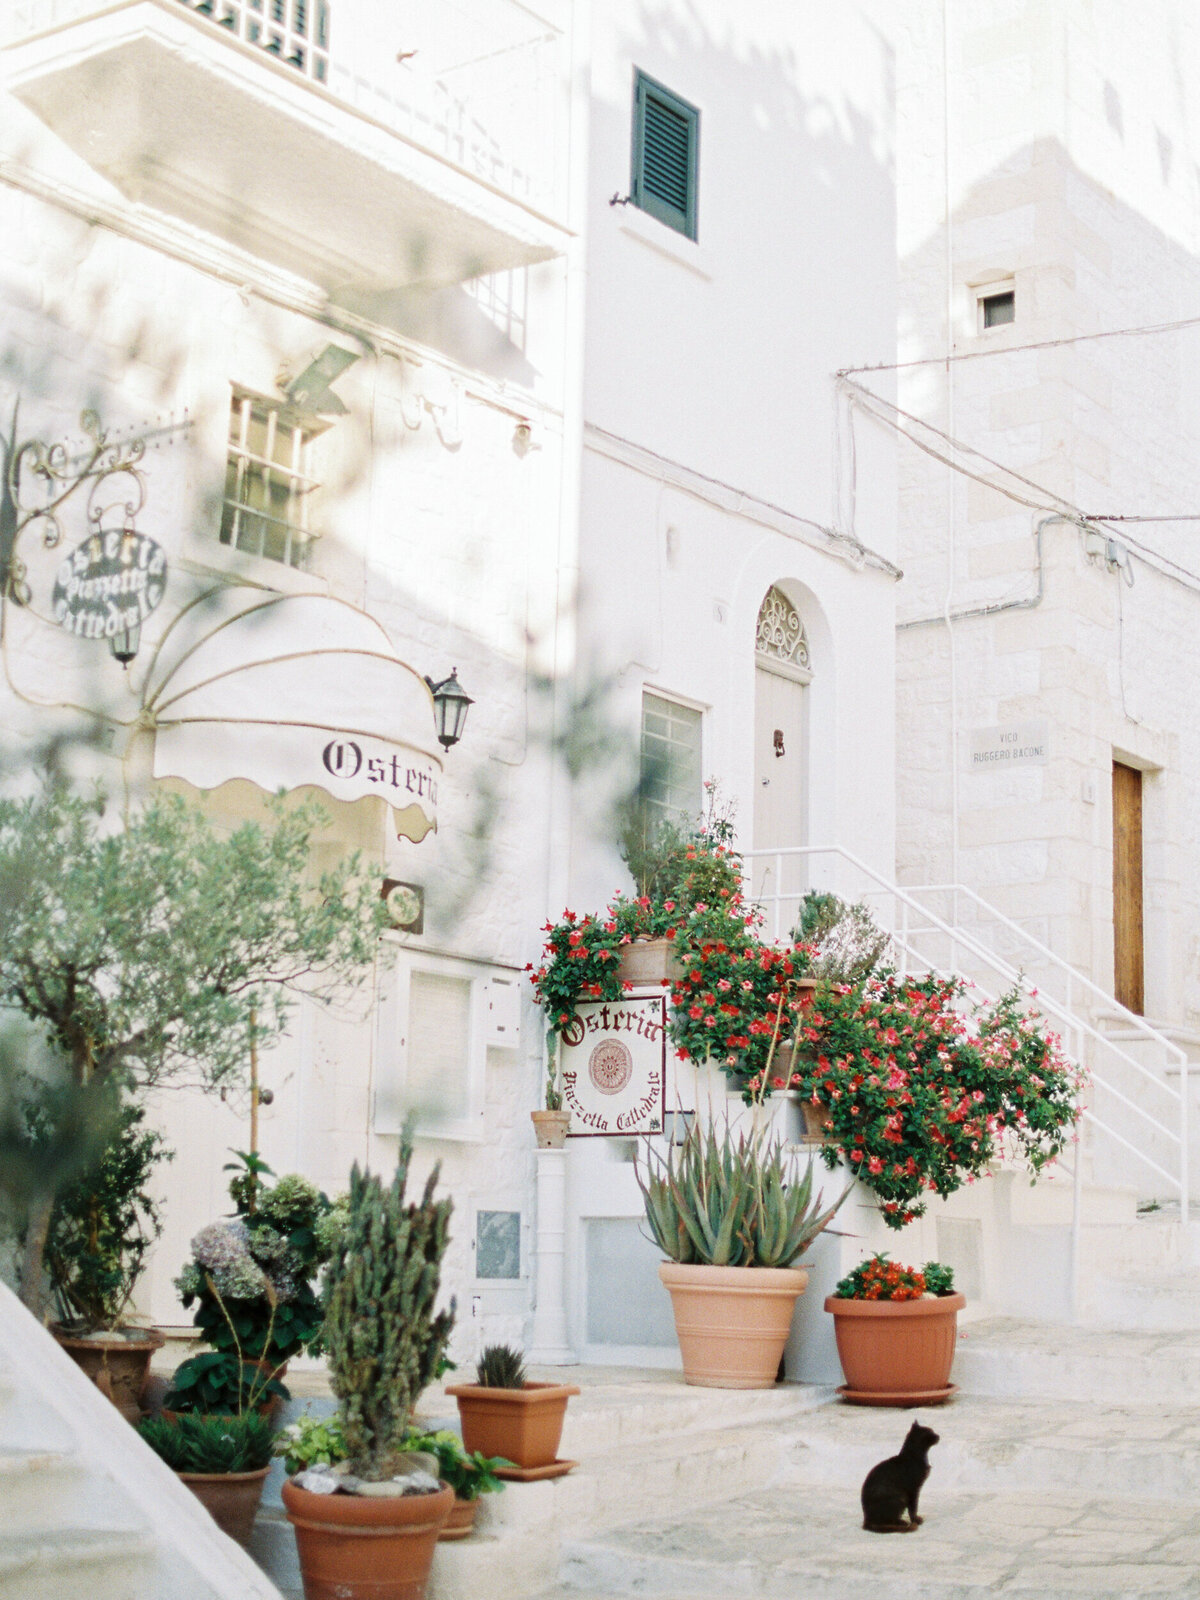 Sergio-Sorrentino-Fotografie_Natalie-and-Paul-Sunrise-Ostuni-Honeymoon-280